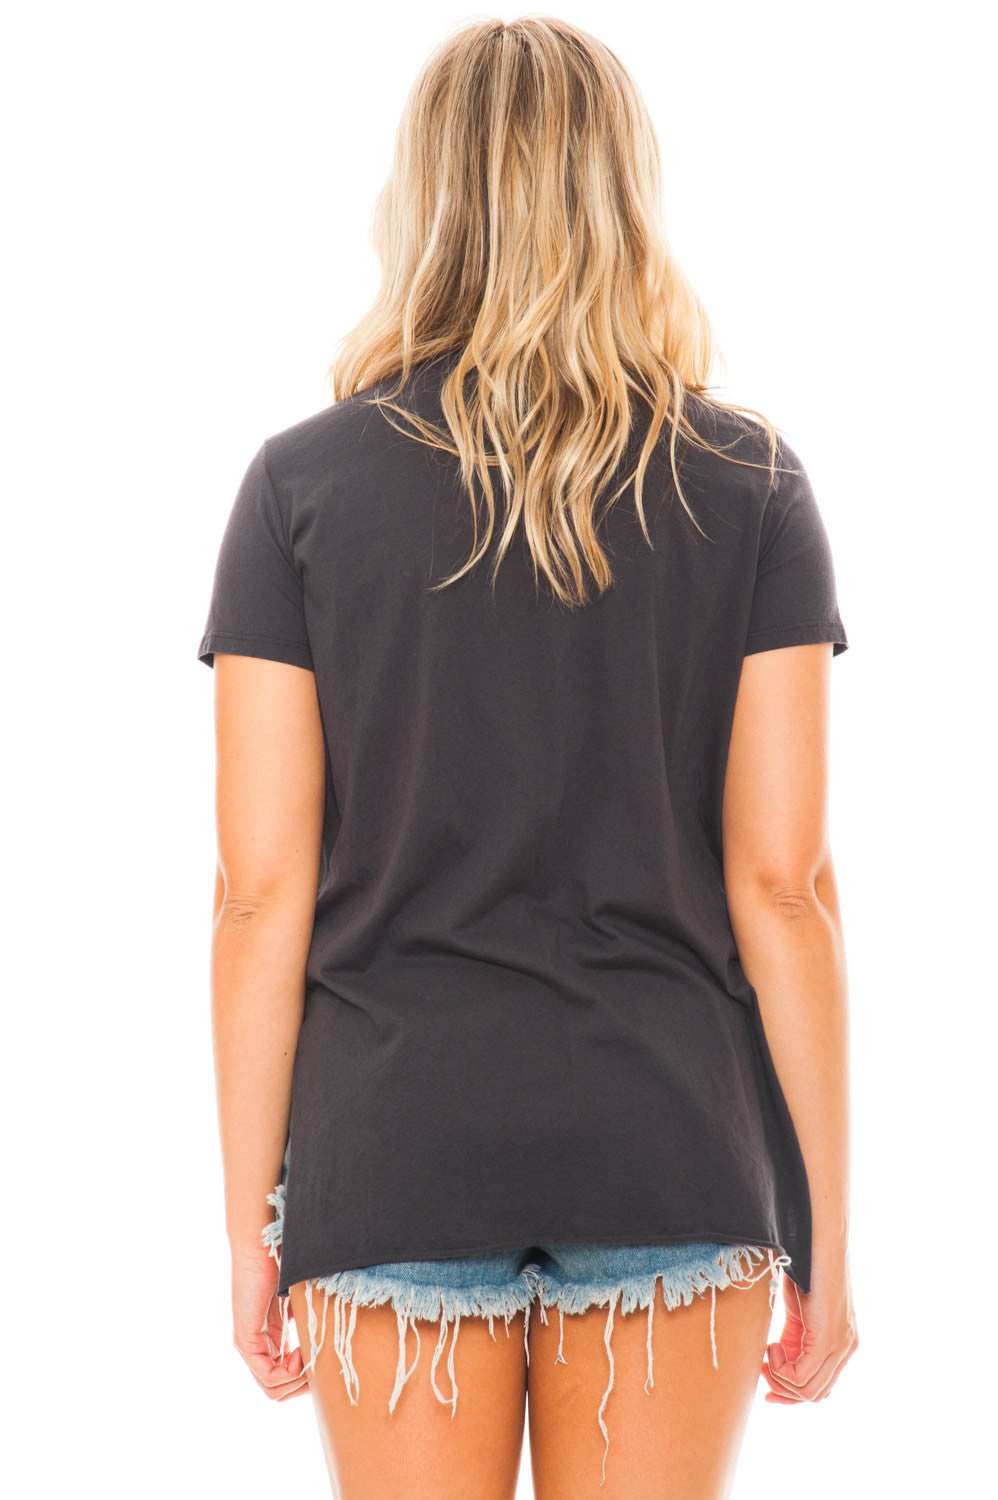 Top - Distressed V-neck Tee by Lush